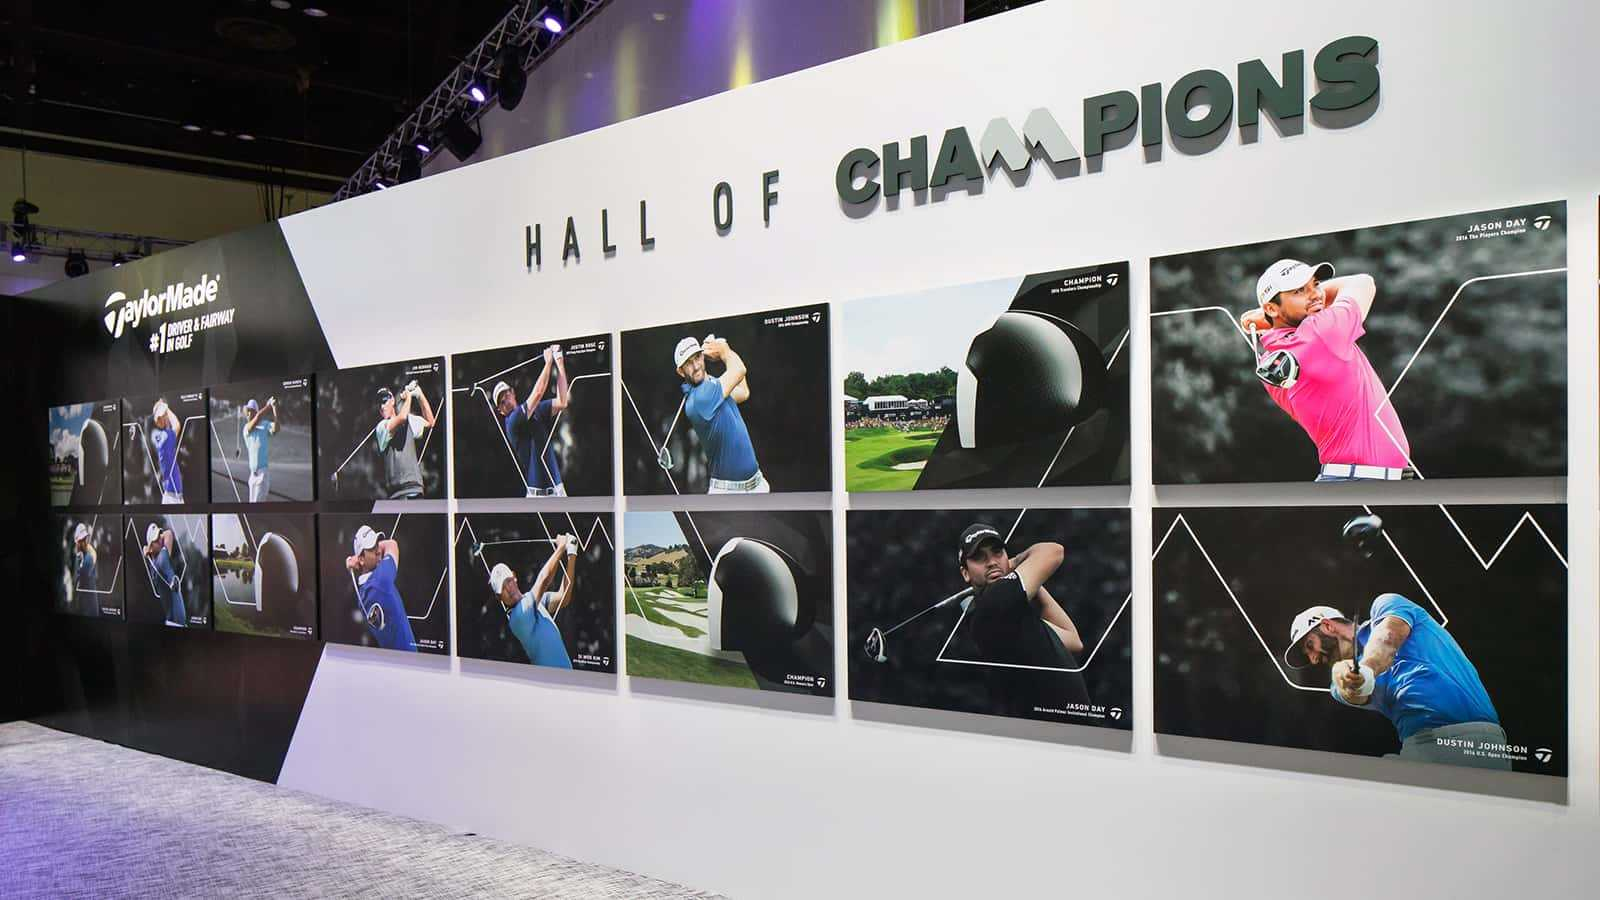 Hall of Champions display at the TaylorMade PGA Merchandise Show 2017 experience.